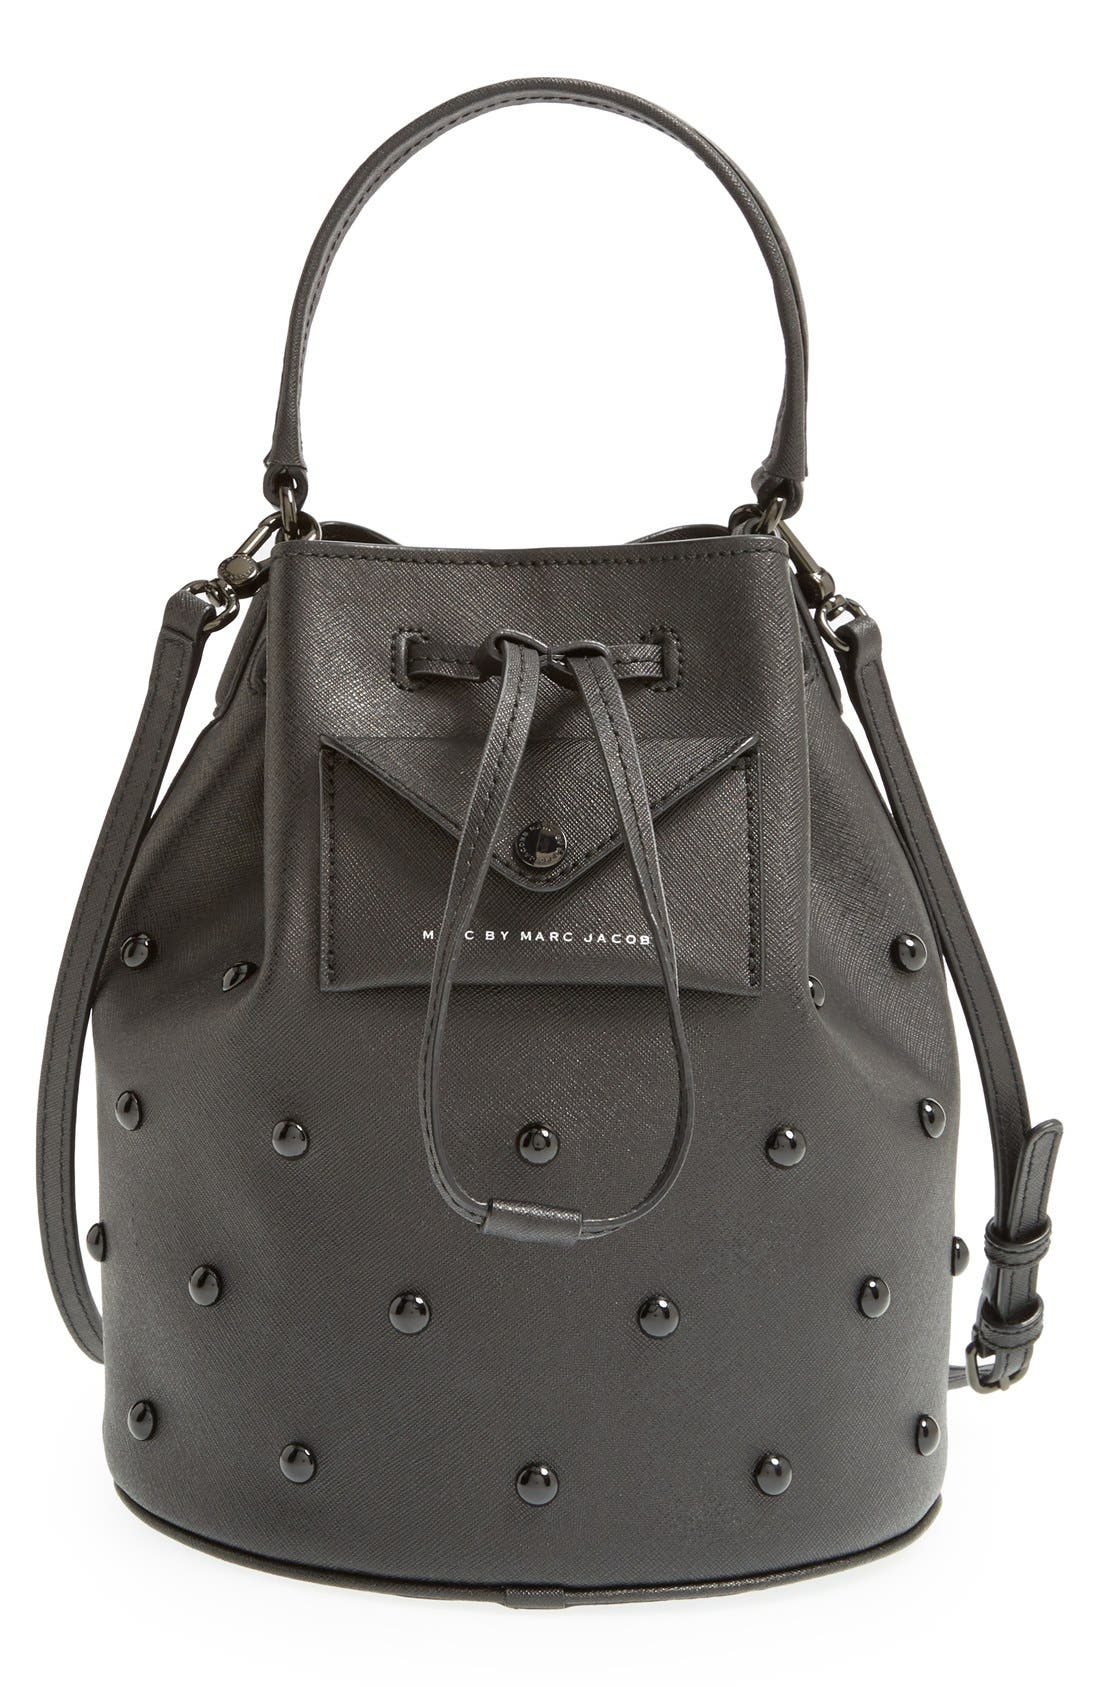 MARC JACOBS, MARC BY MARC JACOBS 'Metropoli' Studded Leather Bucket Bag, Main thumbnail 1, color, 001